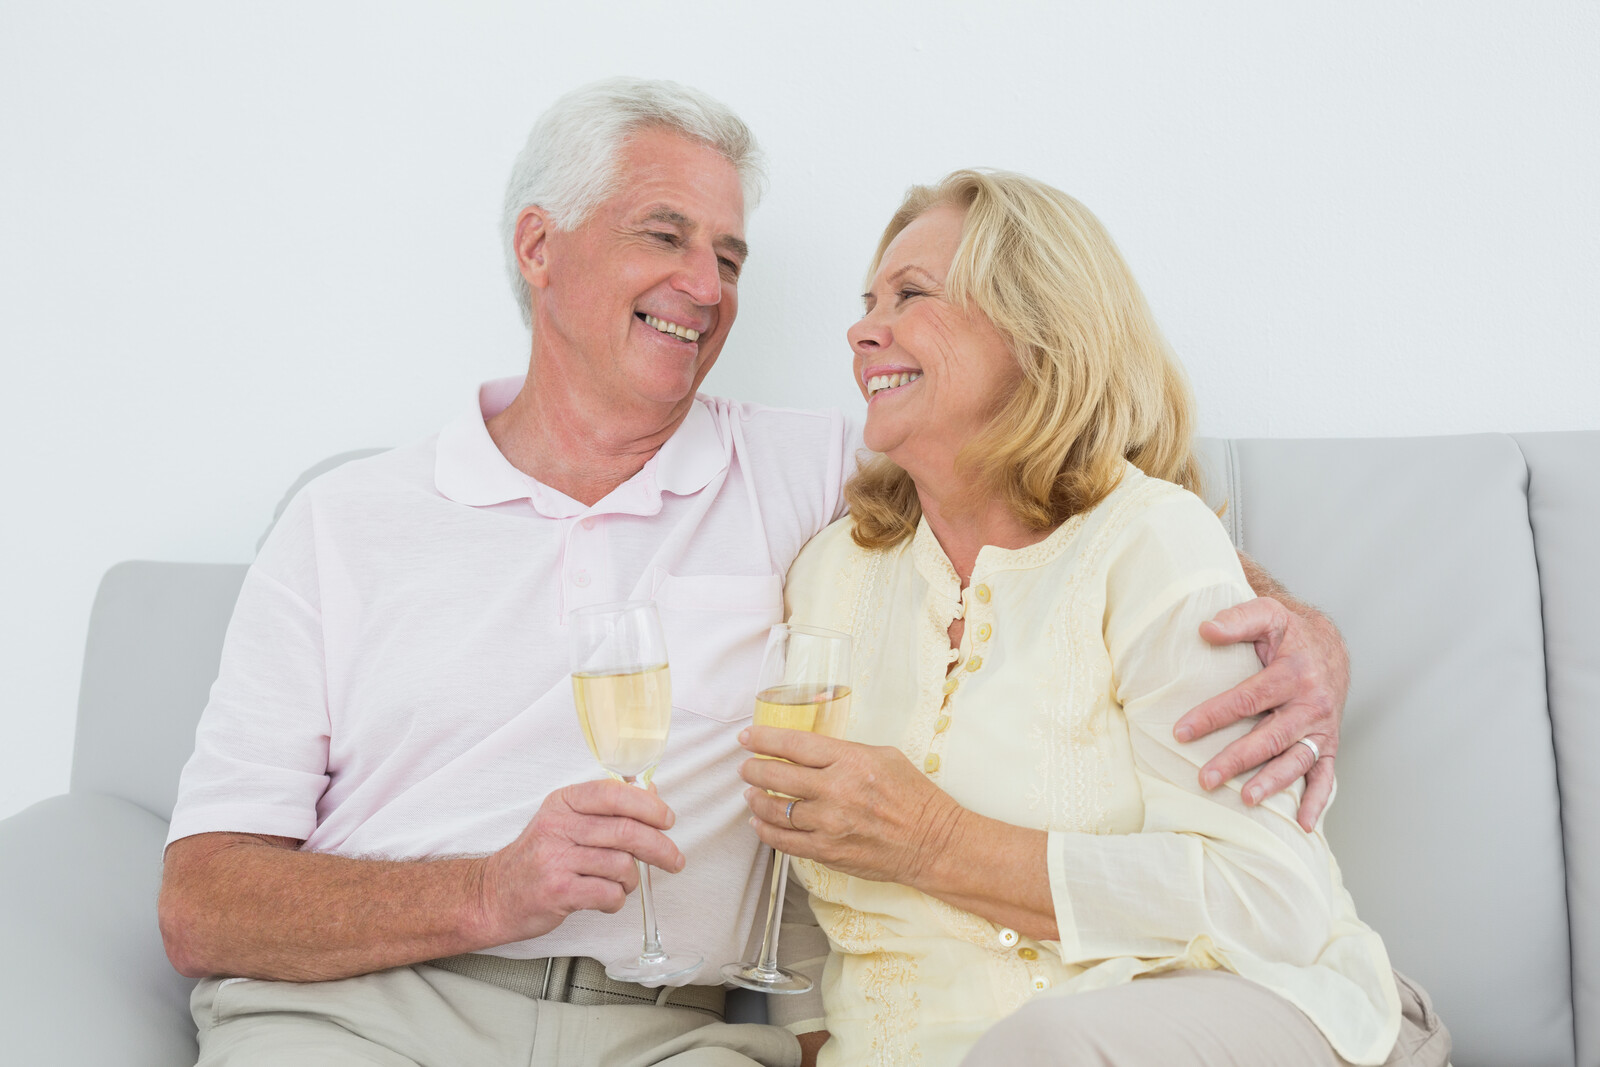 happy senior couple on a couch drinking champagne as if celebrating